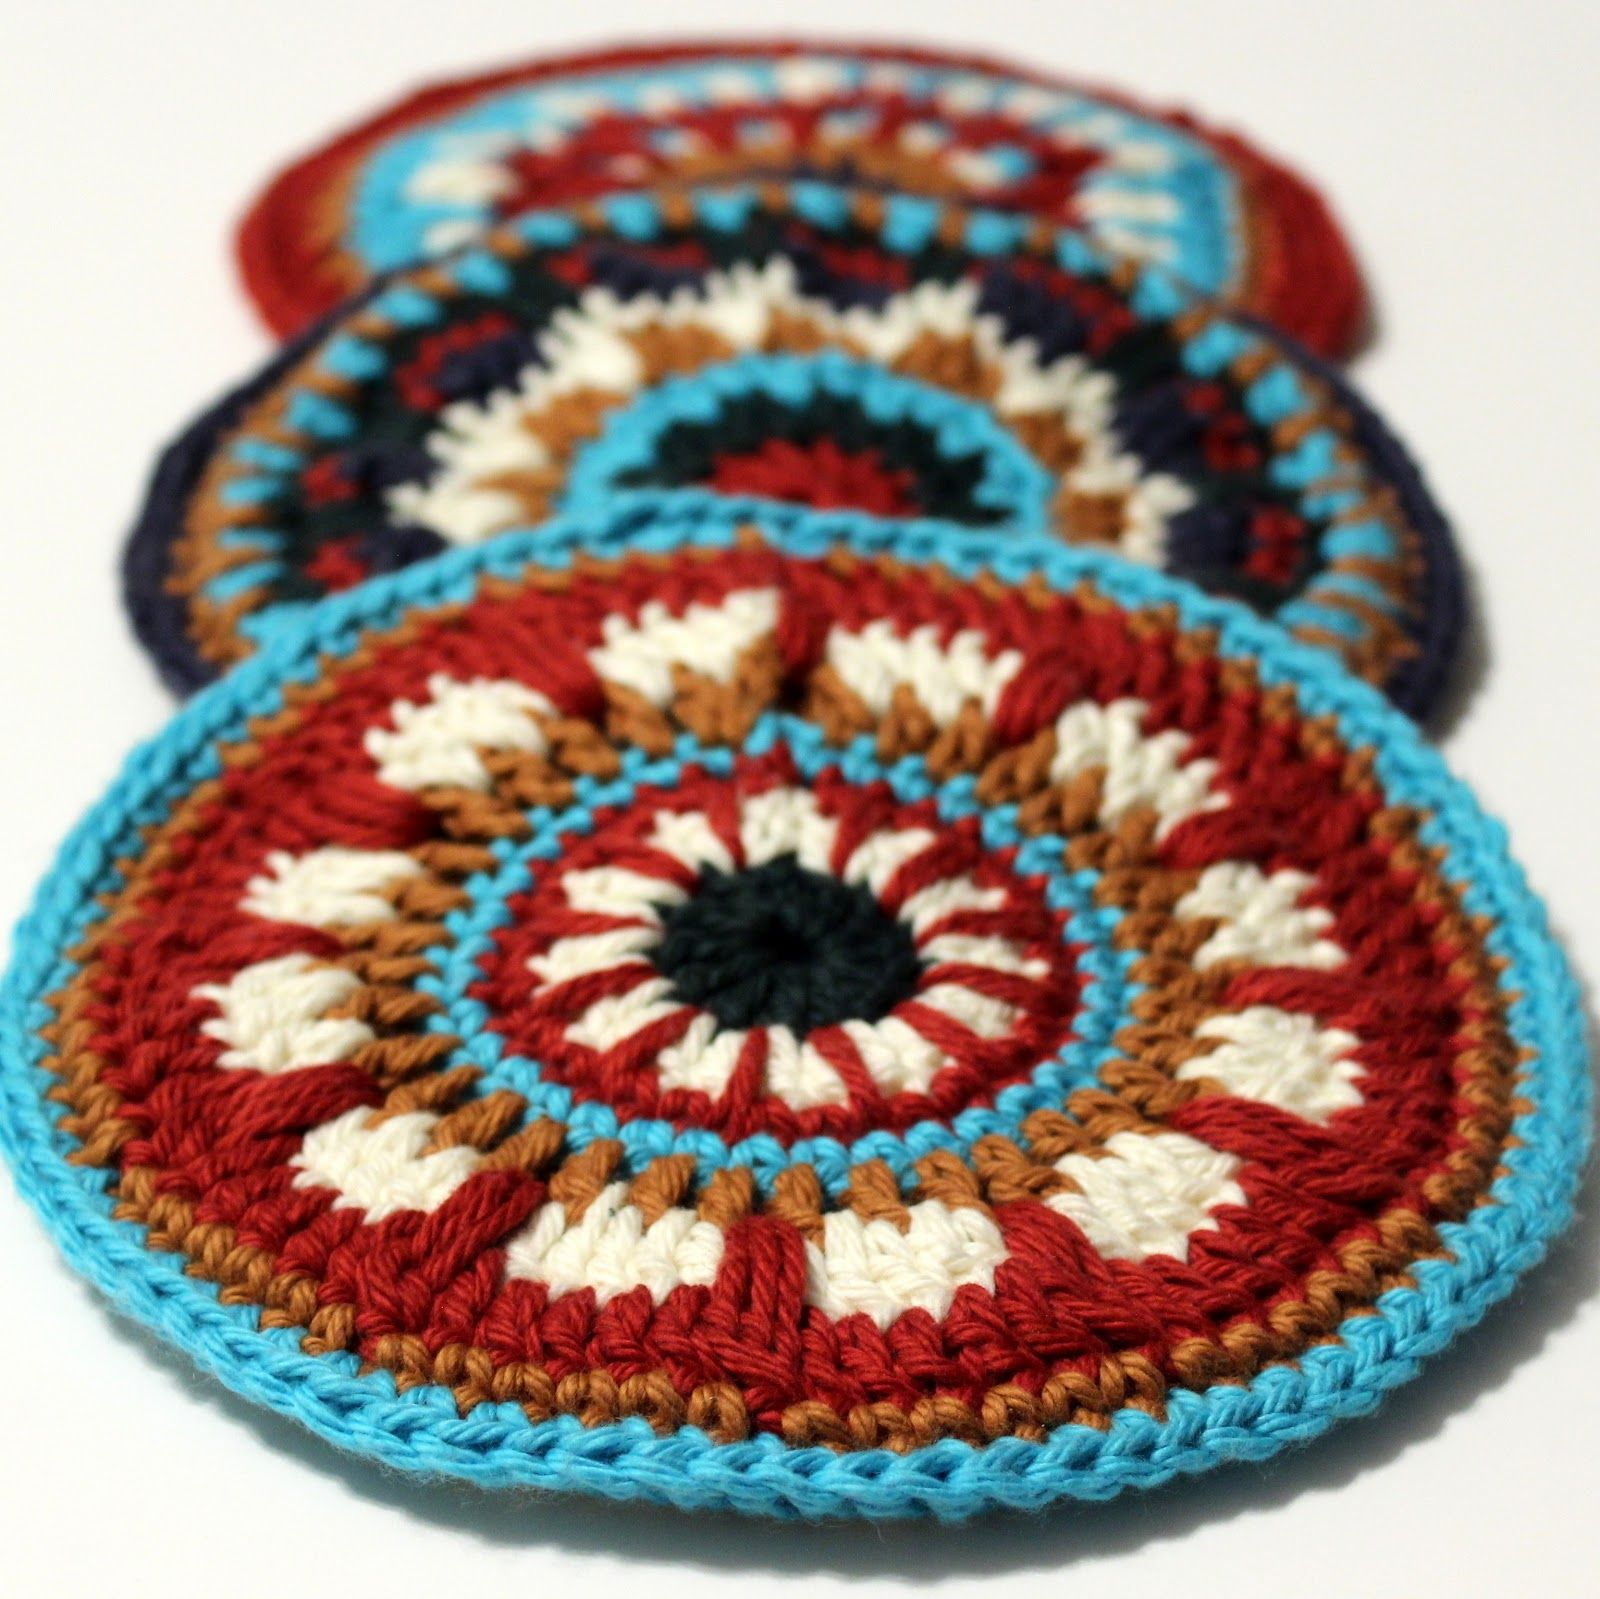 Colorful Crocheted Potholders Tutorial By Heavily Edited Crochet